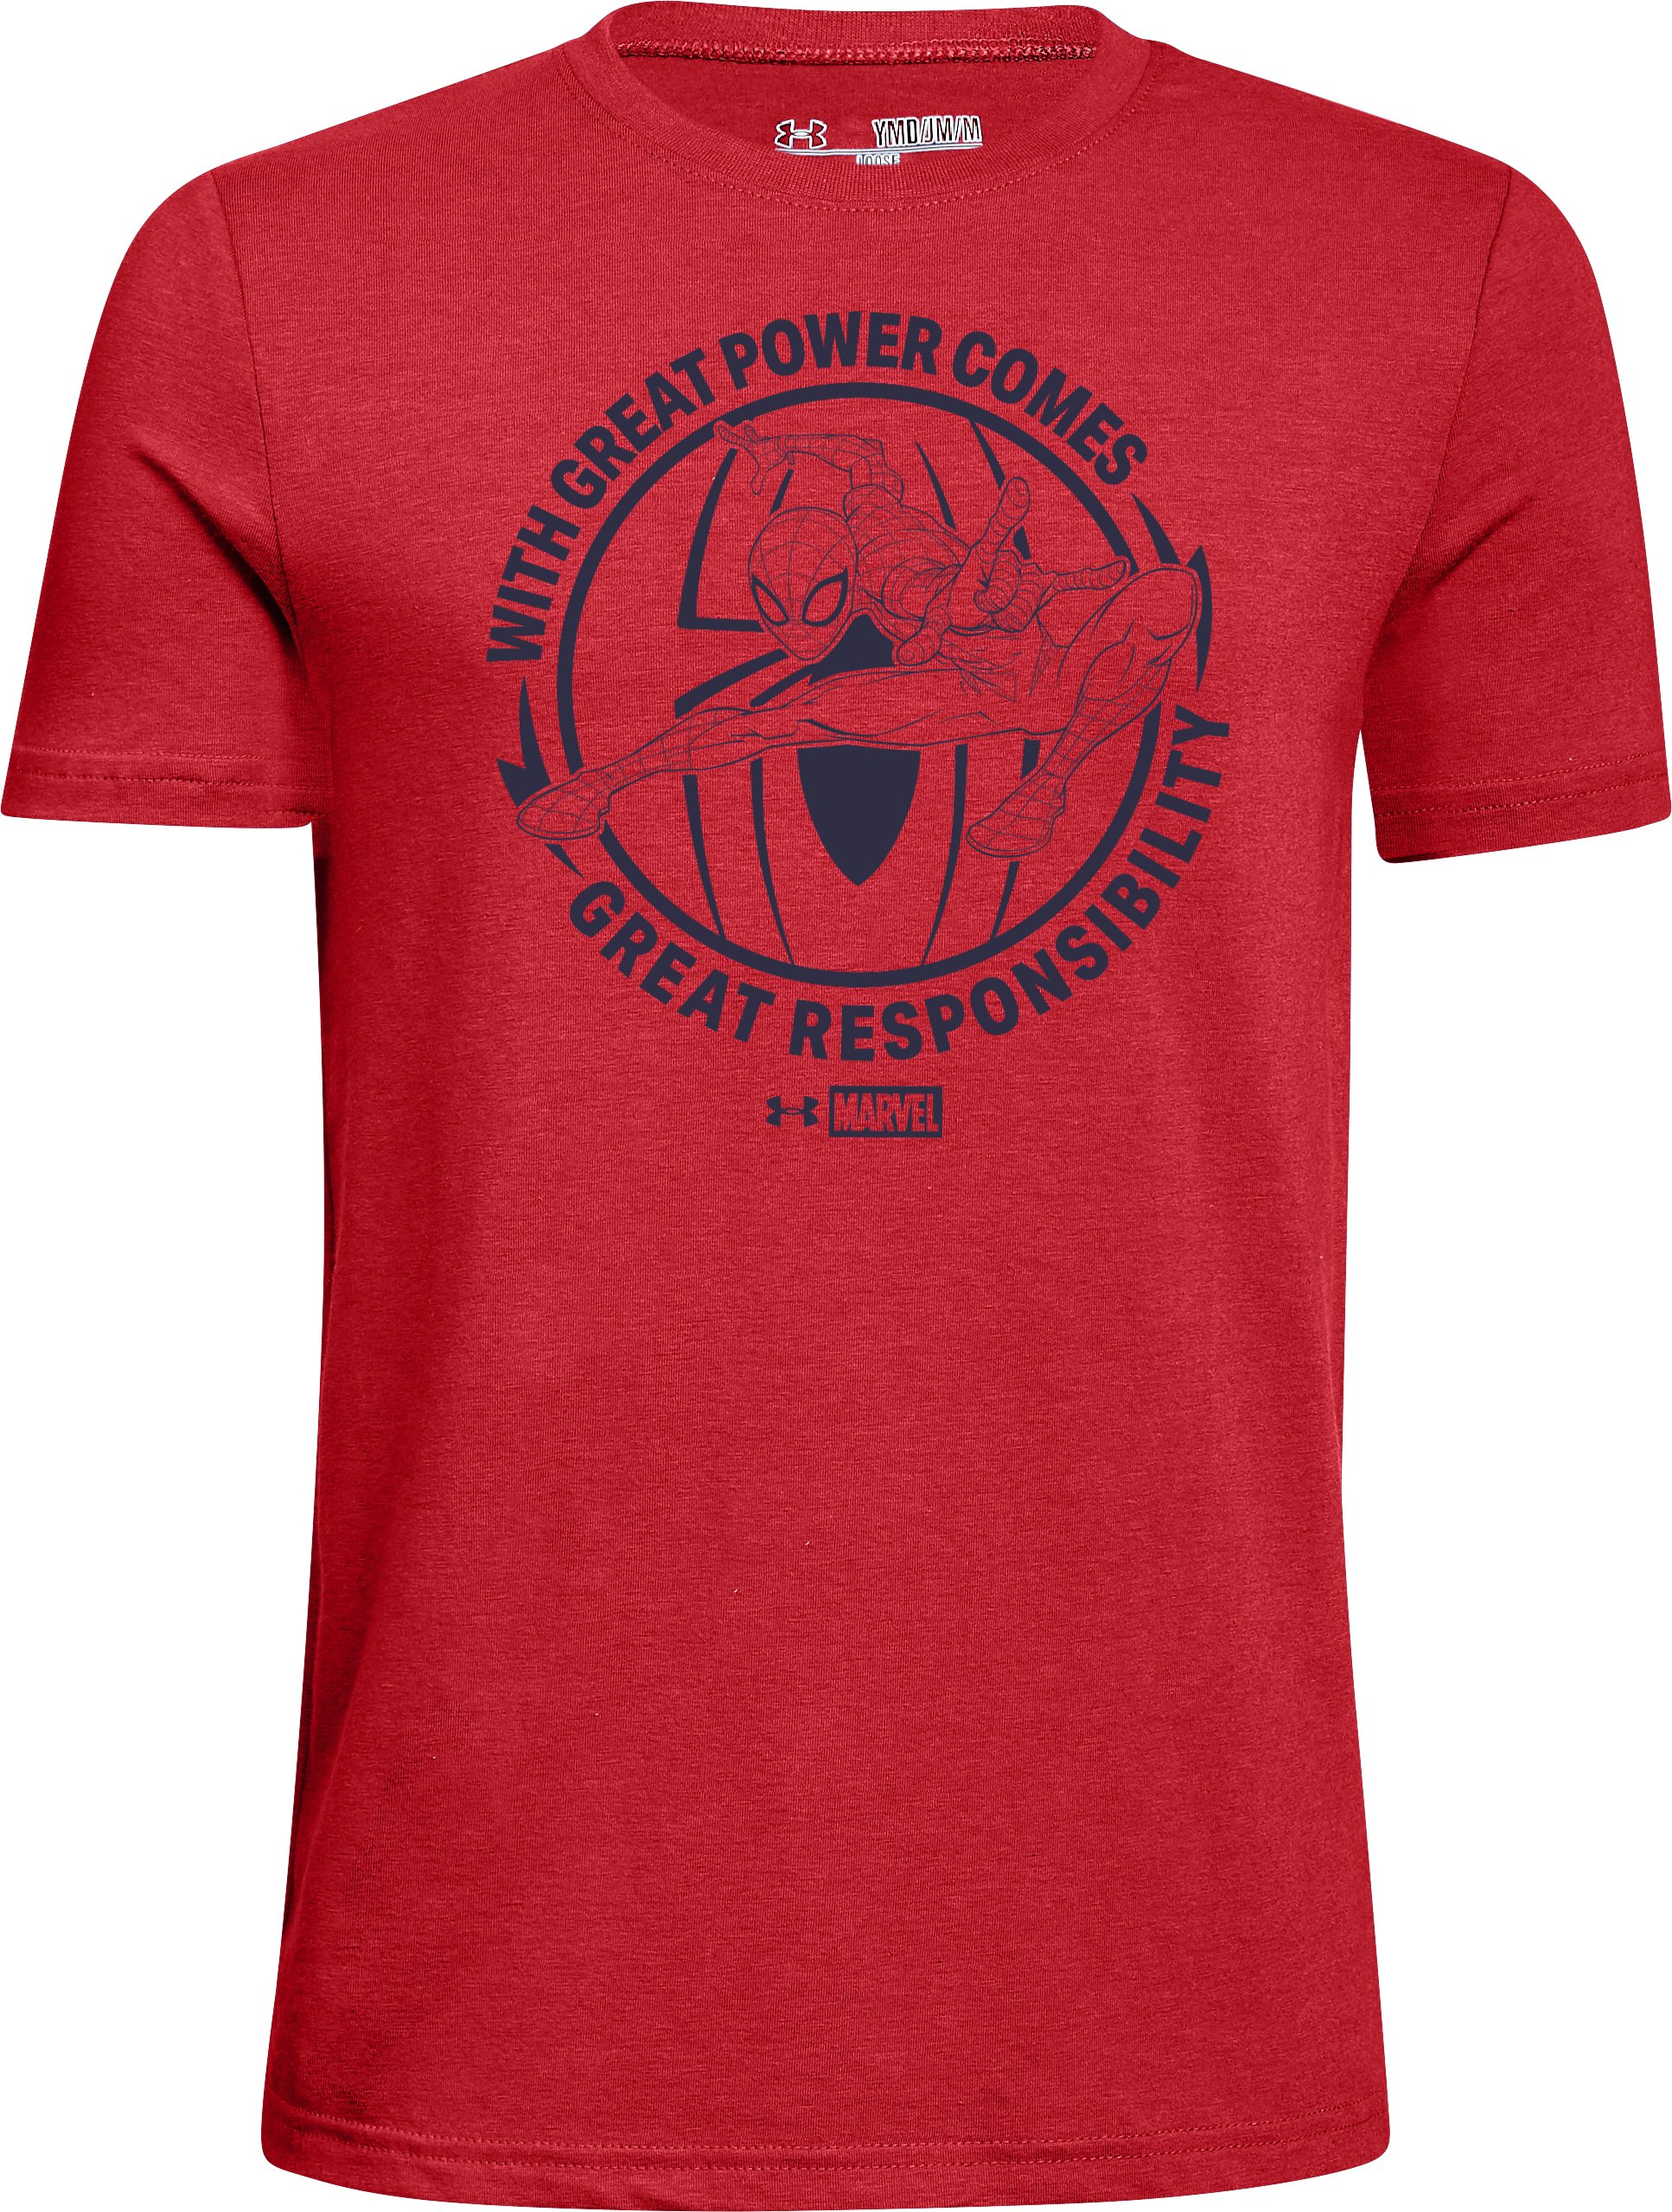 Boys' UA Spiderman Great Power T-Shirt, Red, zoomed